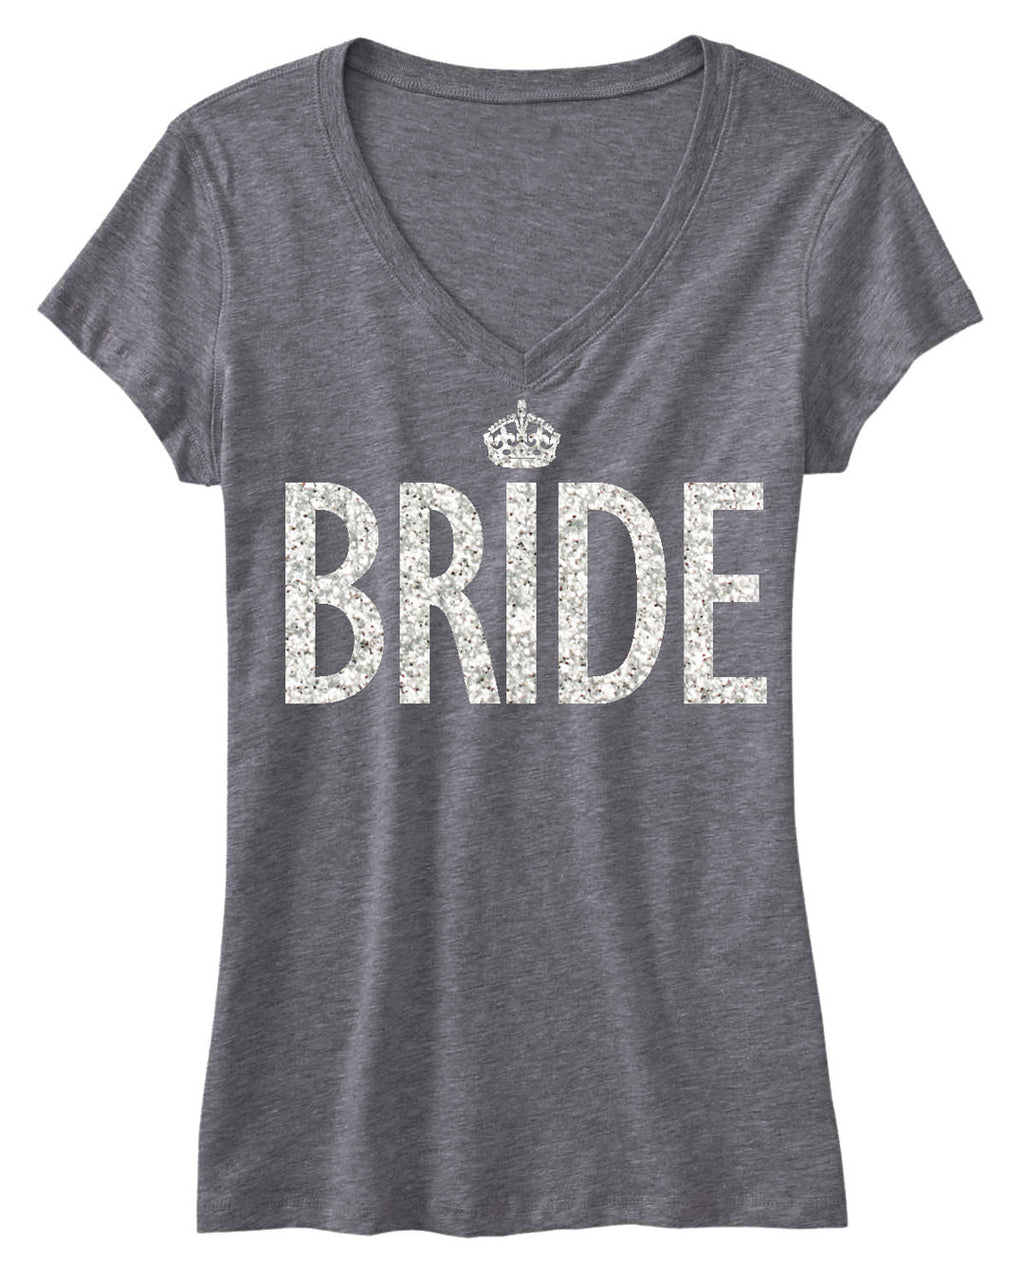 BRIDE GLITTER SHIRT Gray V-neck